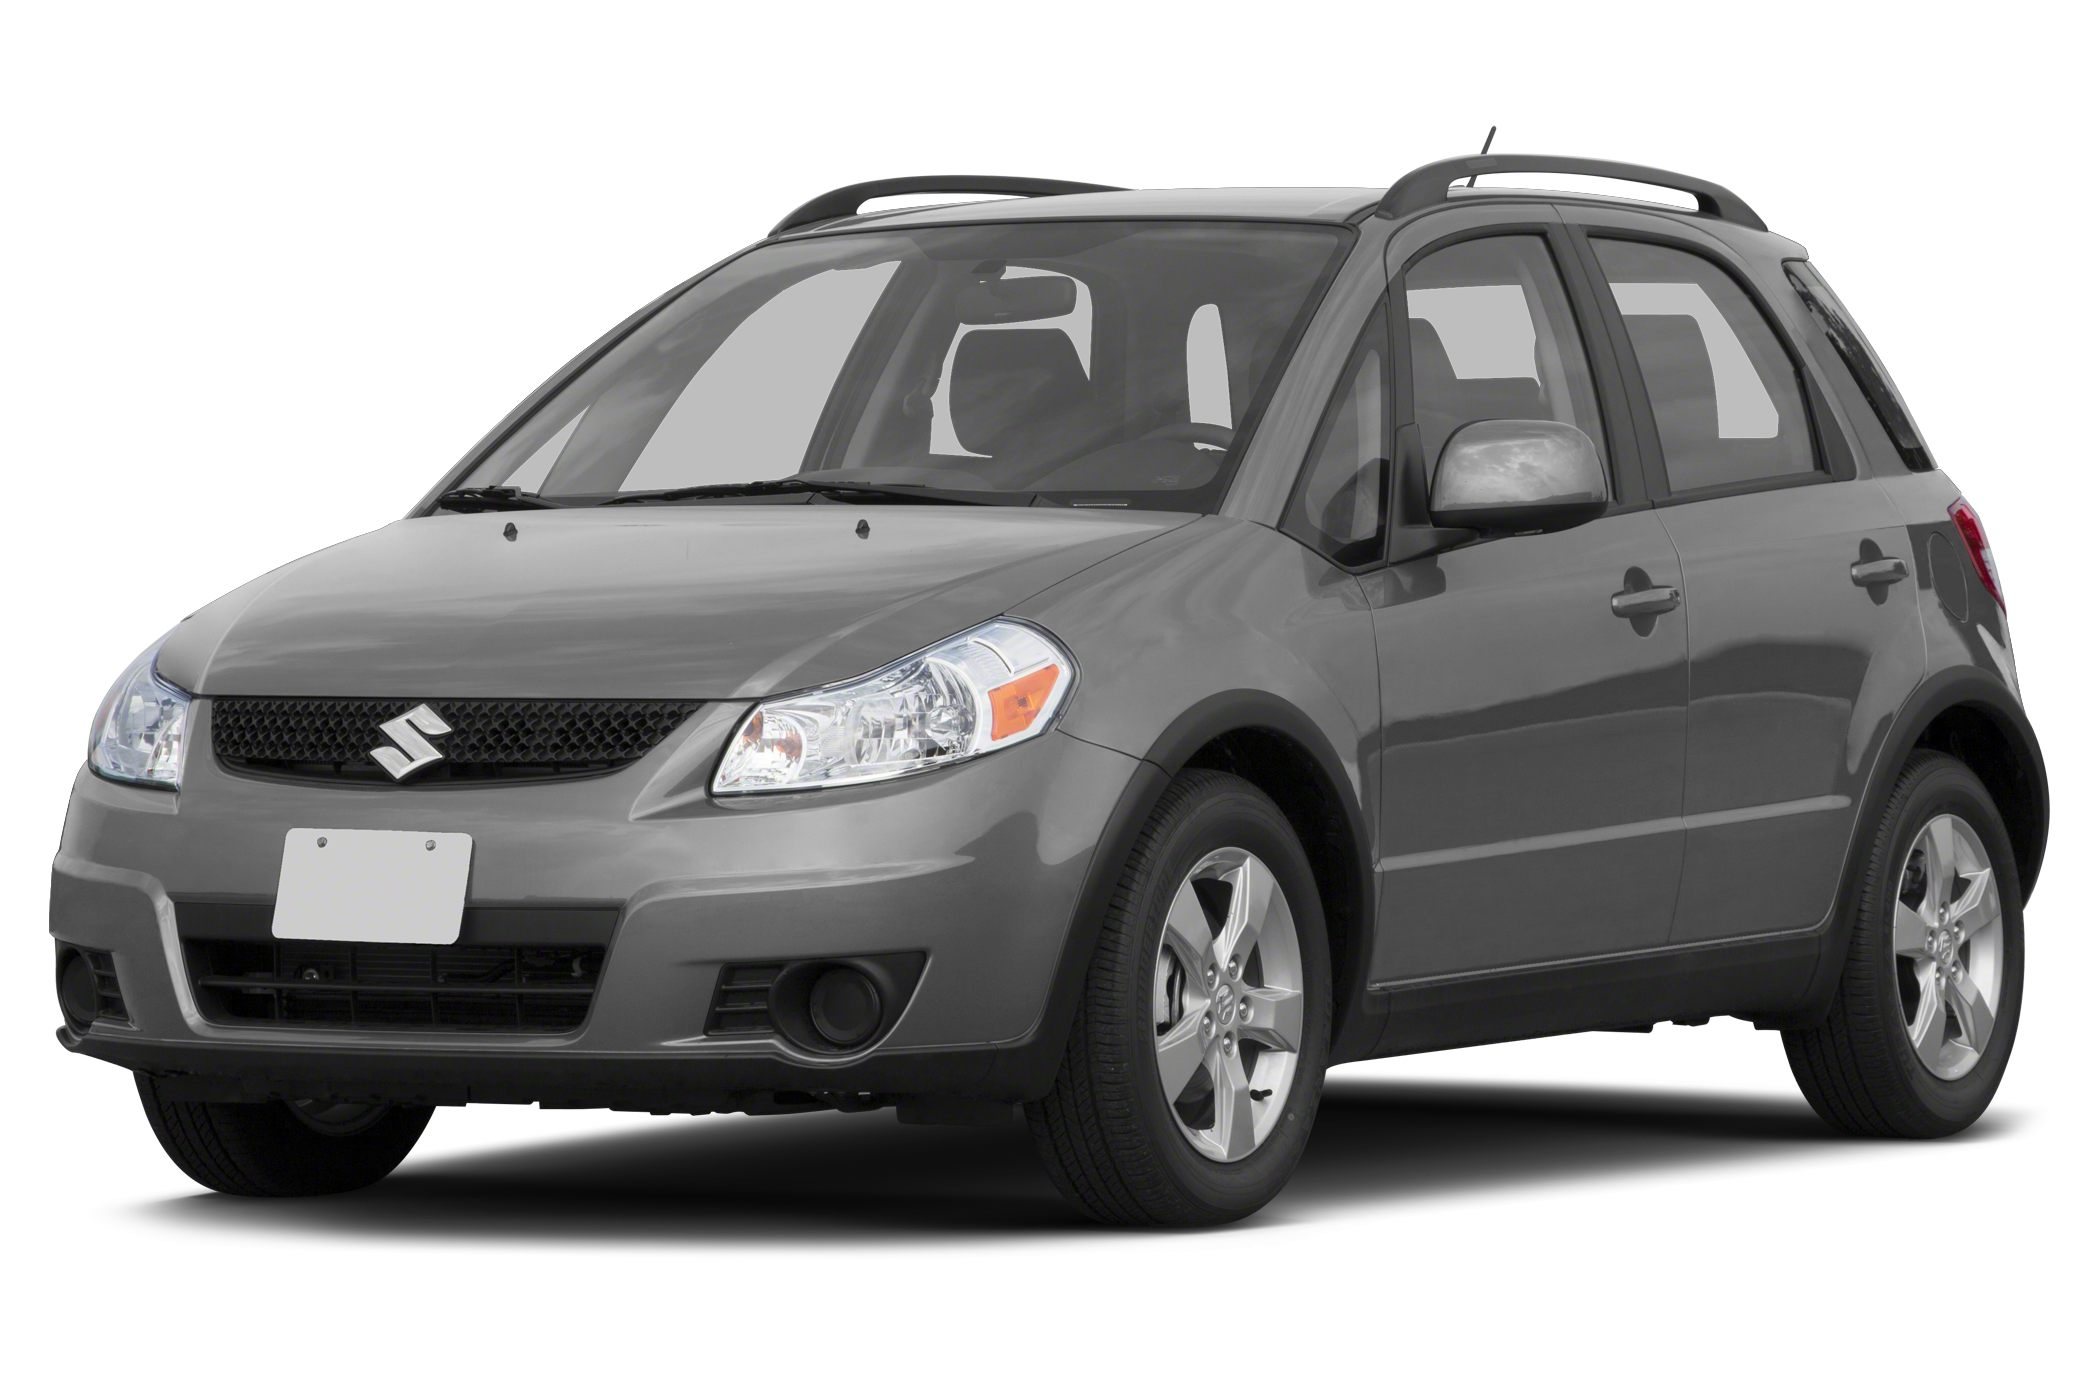 2012 Suzuki SX4 Base ONE OWNER and One Year Free Maintanence ABS brakes Electronic Stability